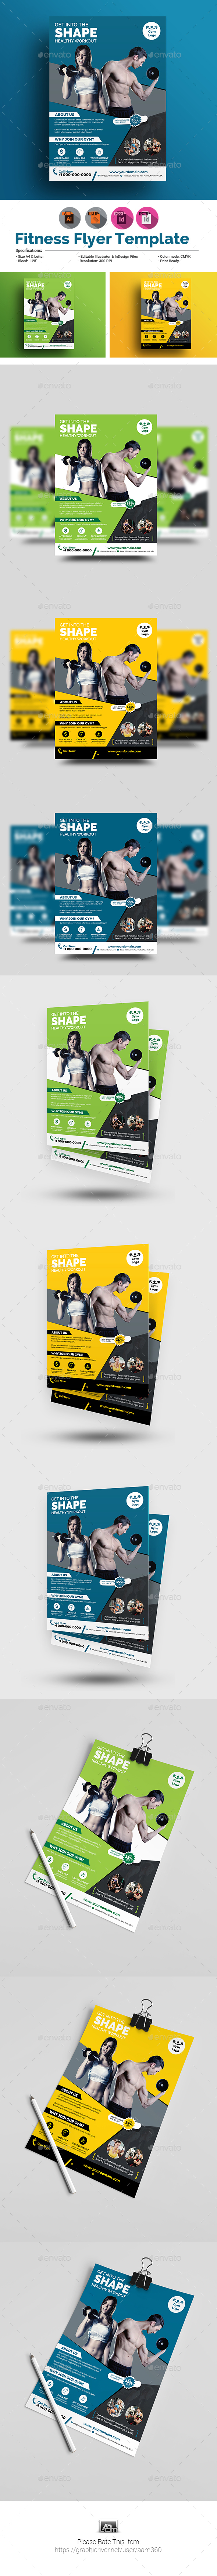 Fitness or Gym Flyer Template